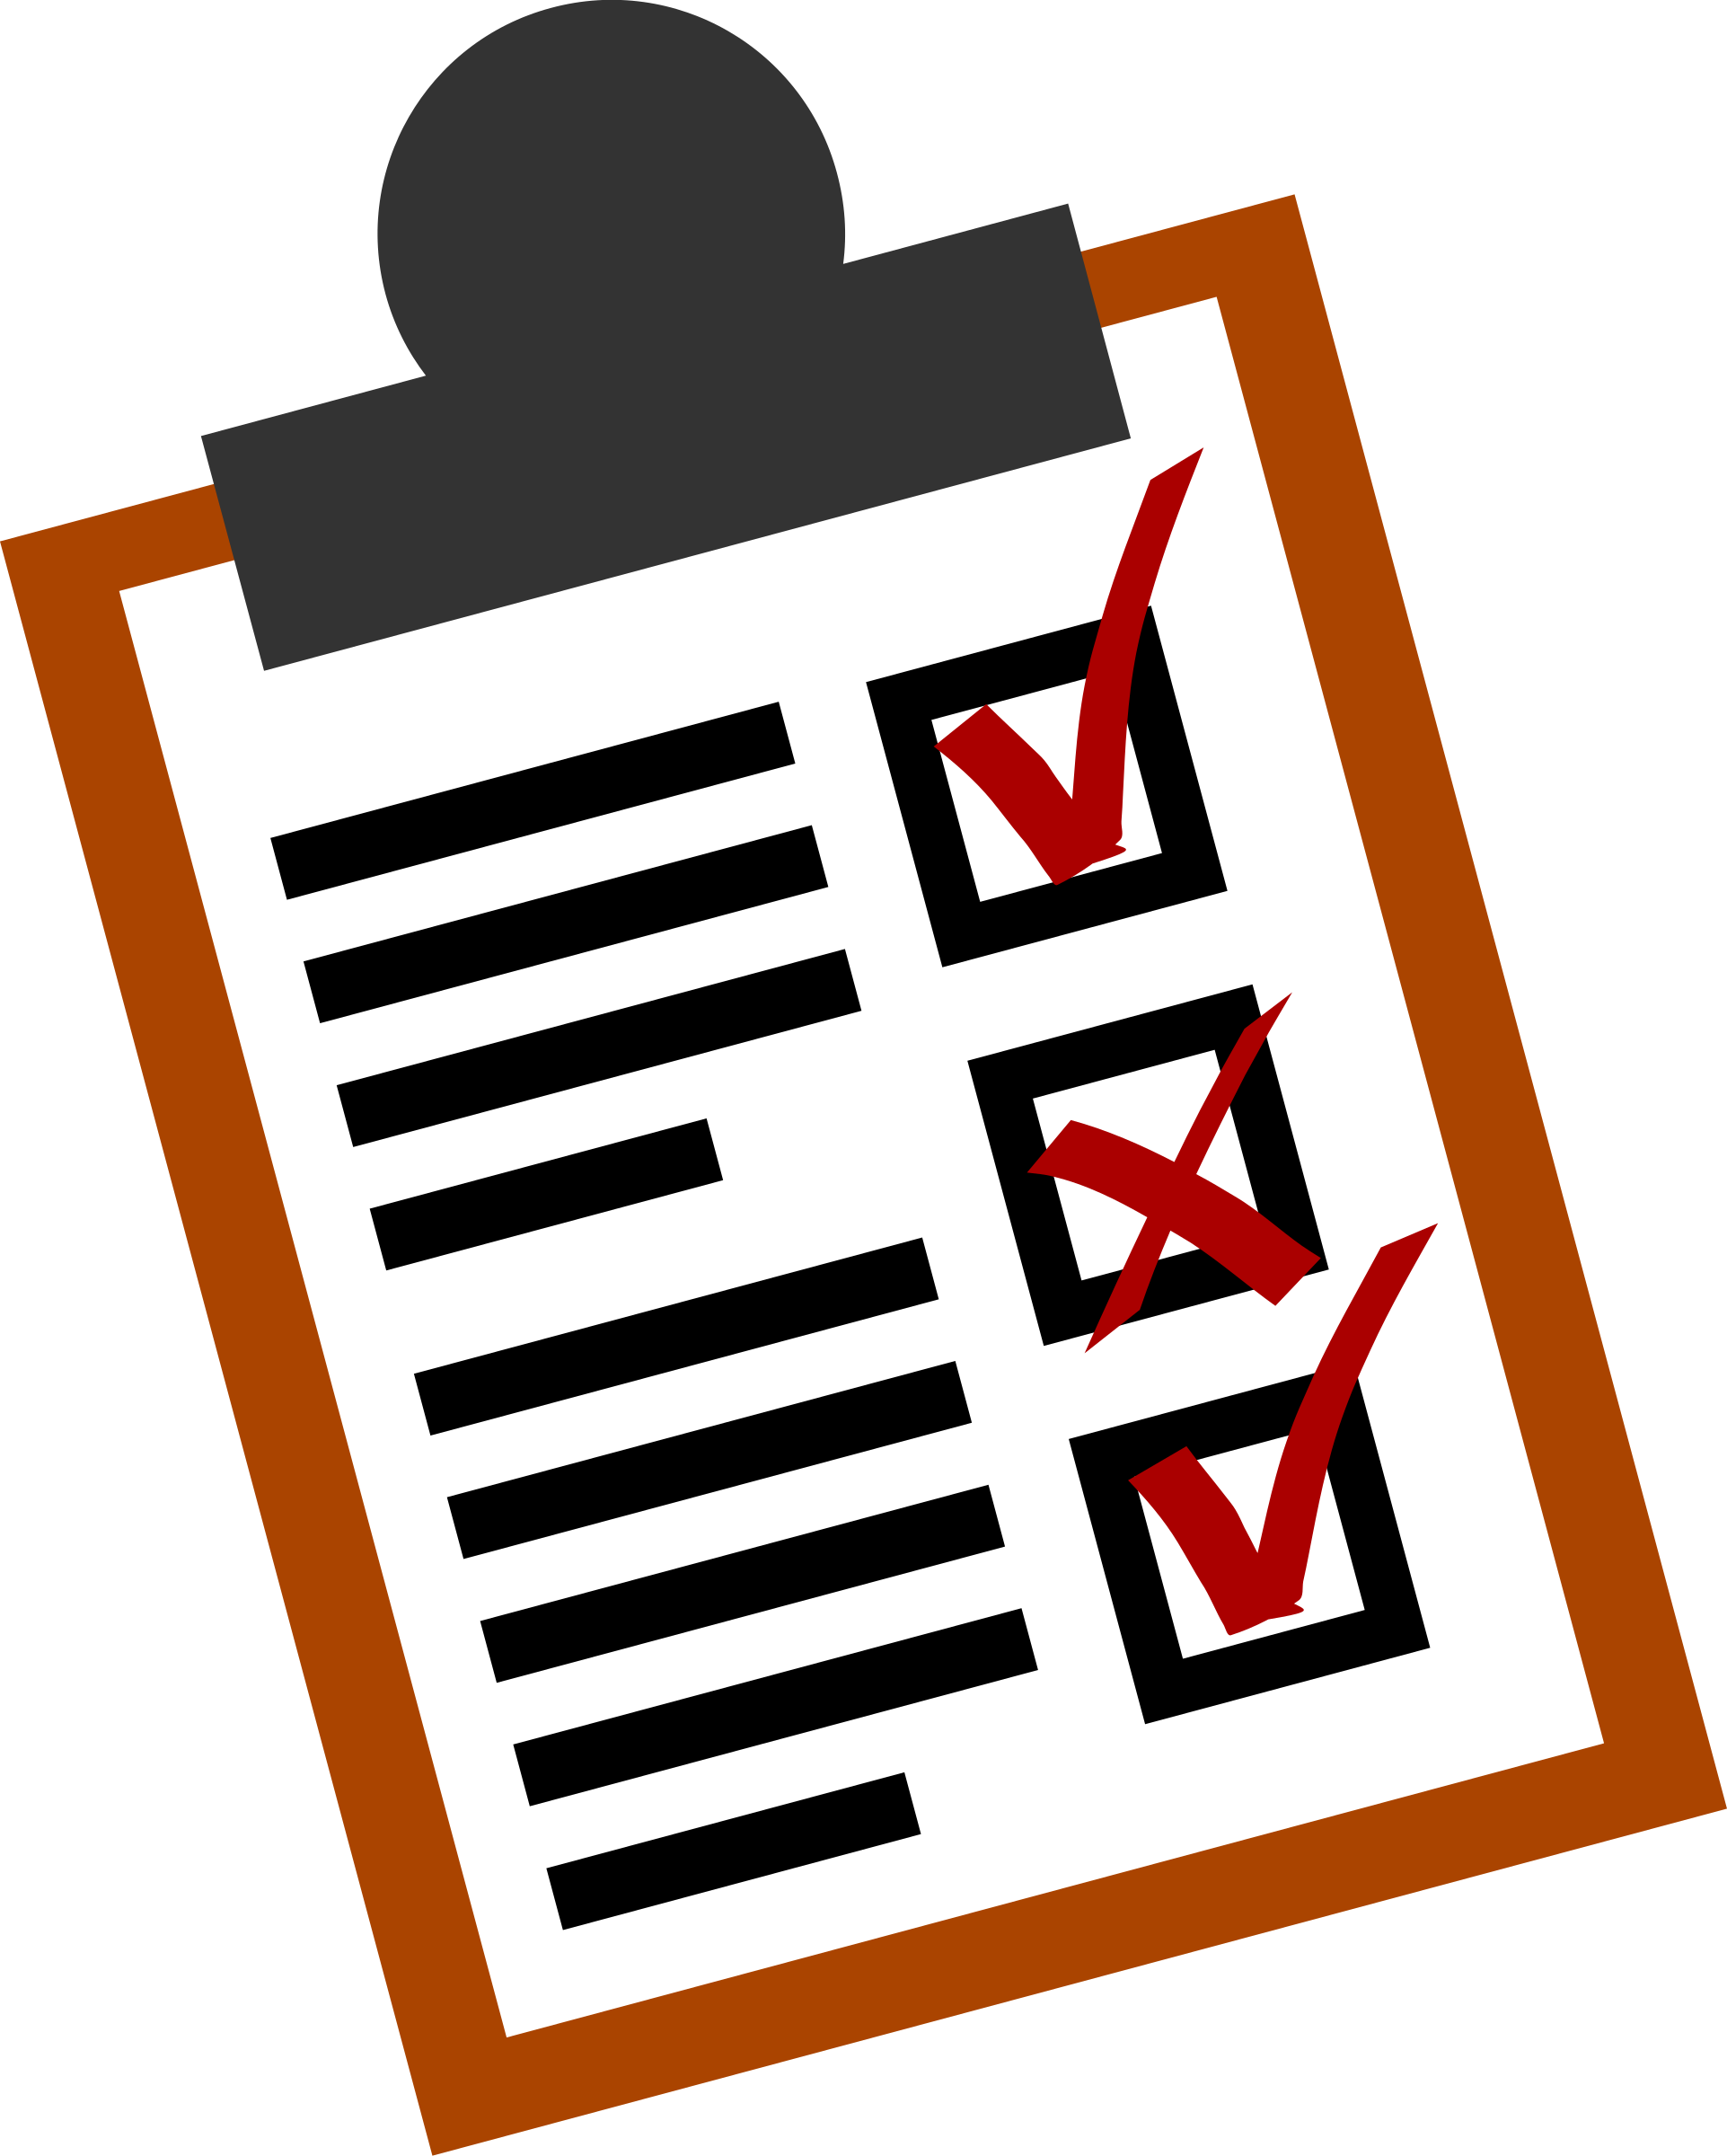 Computer clipart checklist. To do list big